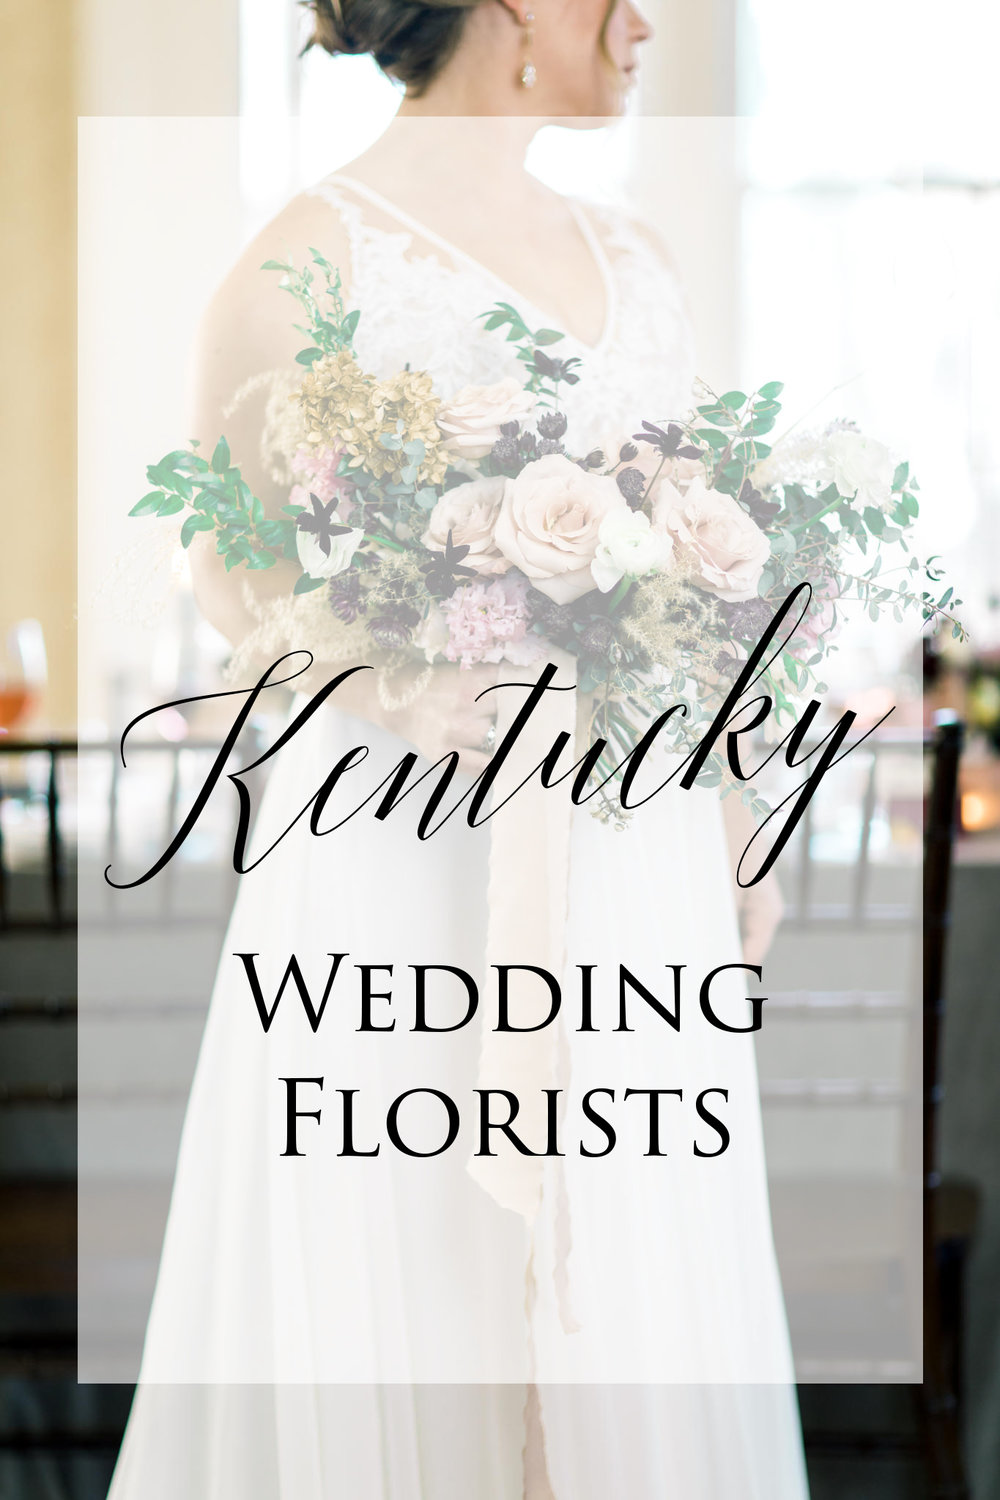 Top Wedding Florists in Kentucky